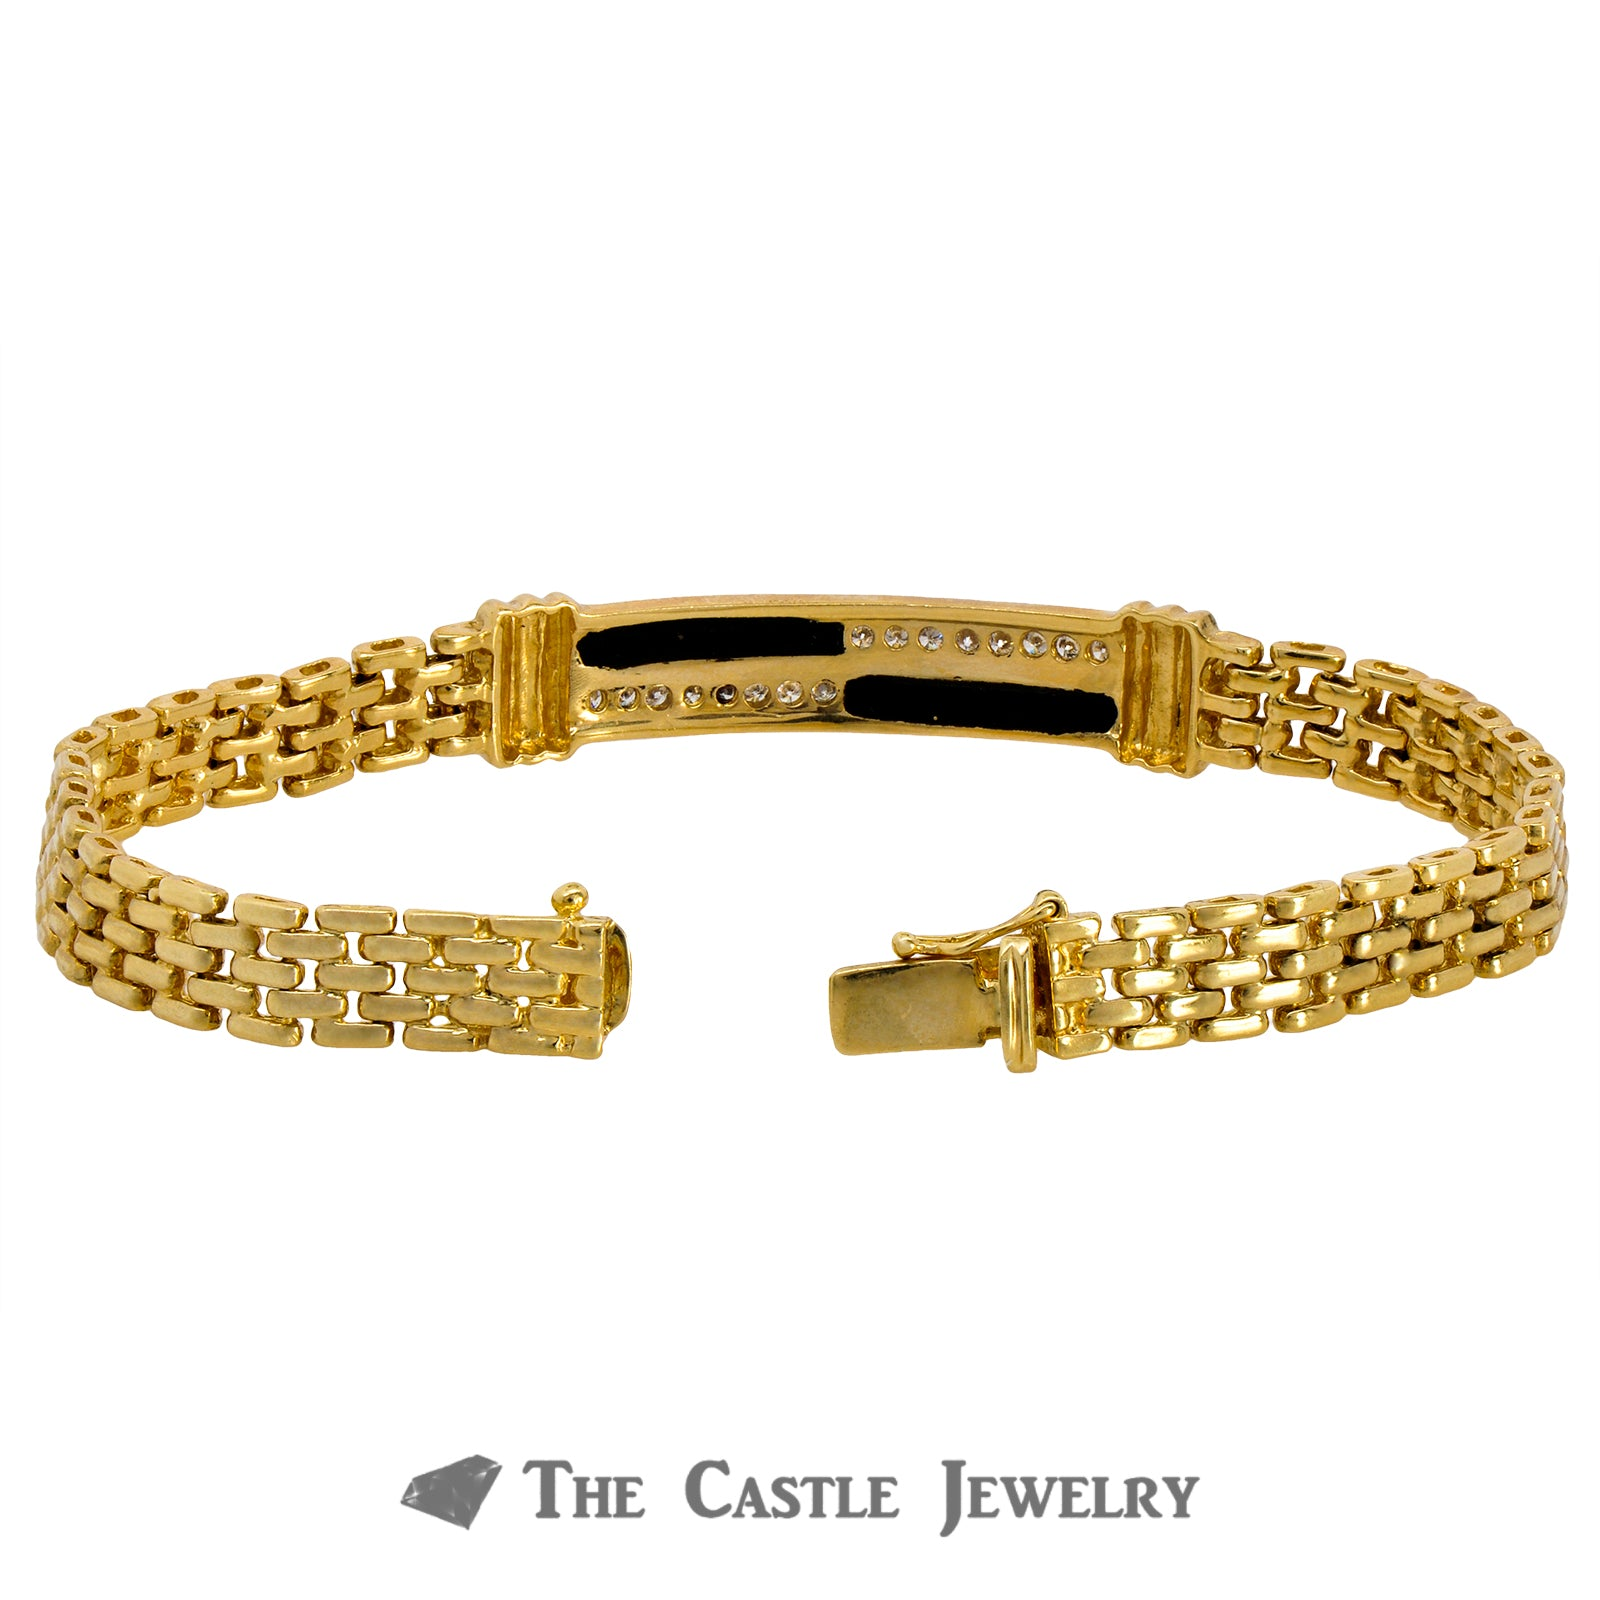 8 Inch Men's Bracelet Crafted in 14K Yellow Gold with Onyx and Diamond Bar Center-1